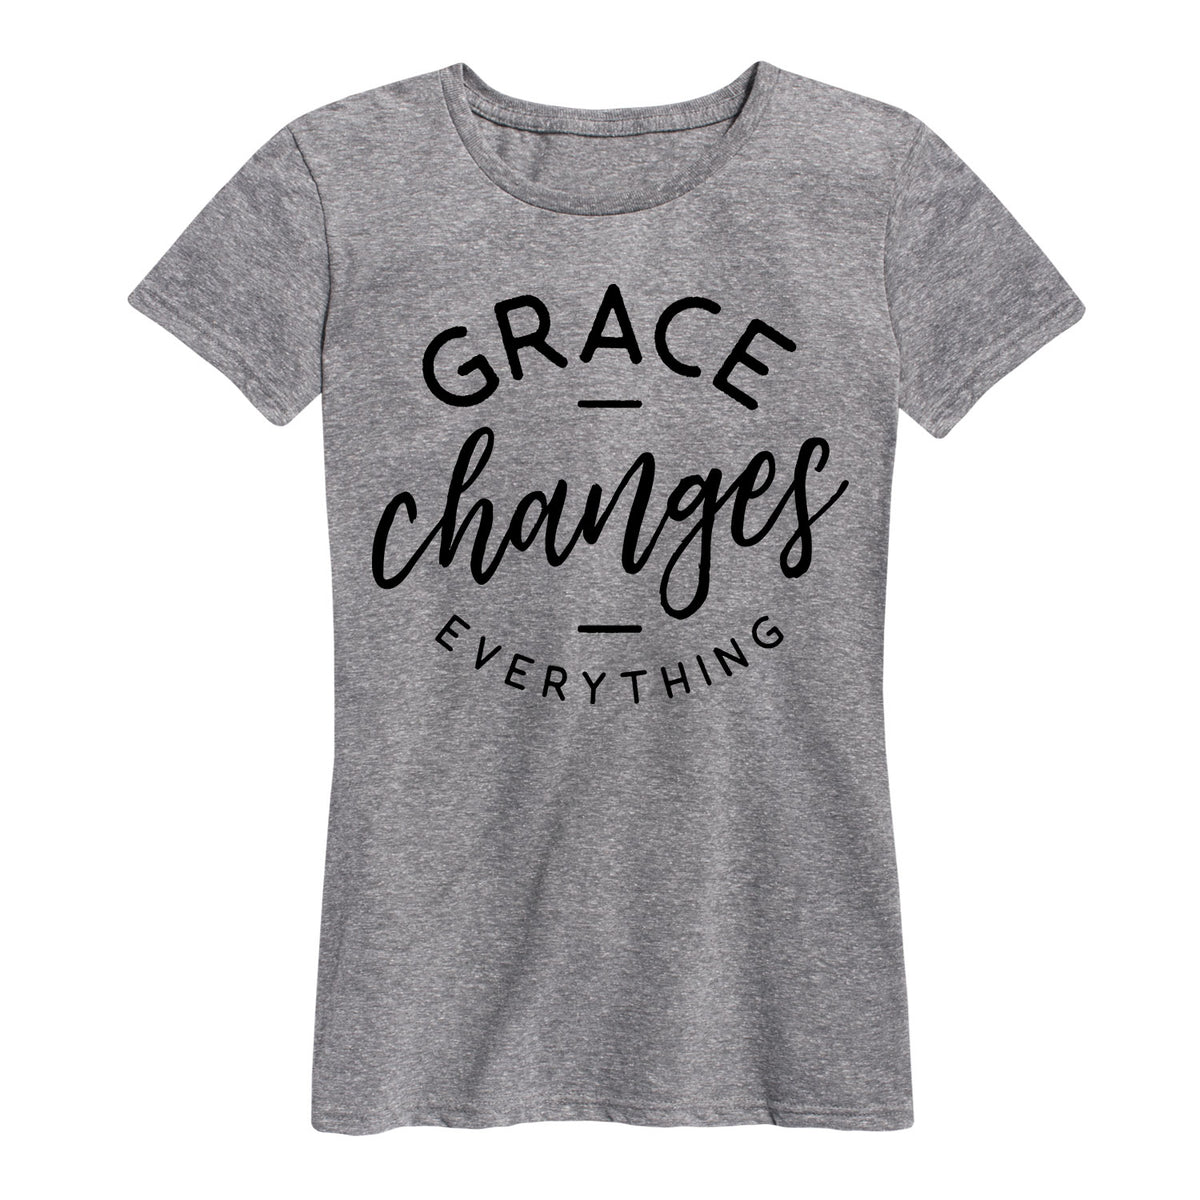 Grace Changes Everything - Women's Short Sleeve T-Shirt